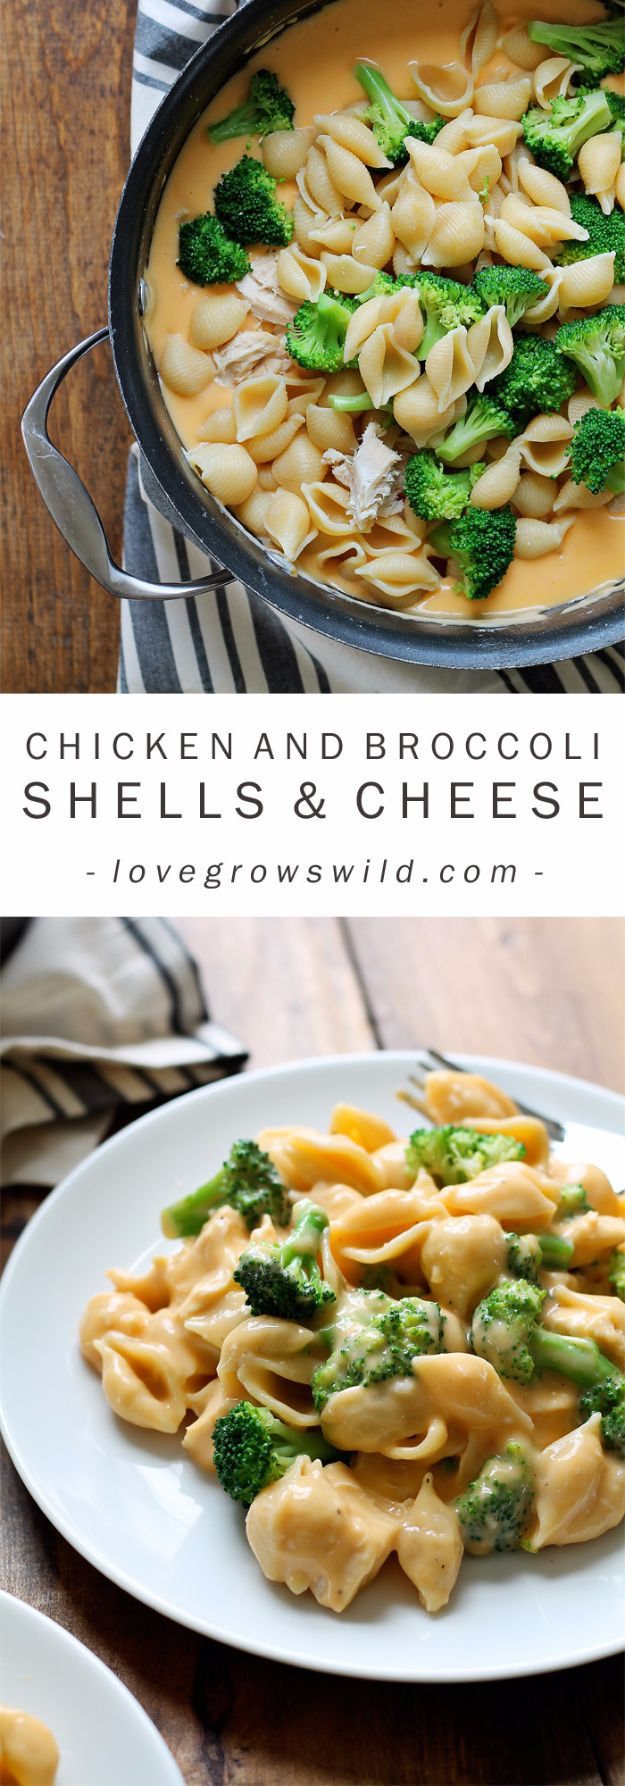 Best Fall Recipes and Ideas for Dinner - Chicken And Broccoli Shells And Cheese - Quick Meals With Chicken, Beef and Fish, Easy Crockpot Meals and Make Ahead Soups and Dinners - Healthy Dinner Recipes and Fast Last Minute Foods With Spinach, Vegetables, Butternut Squash, Pumpkin and Nuts